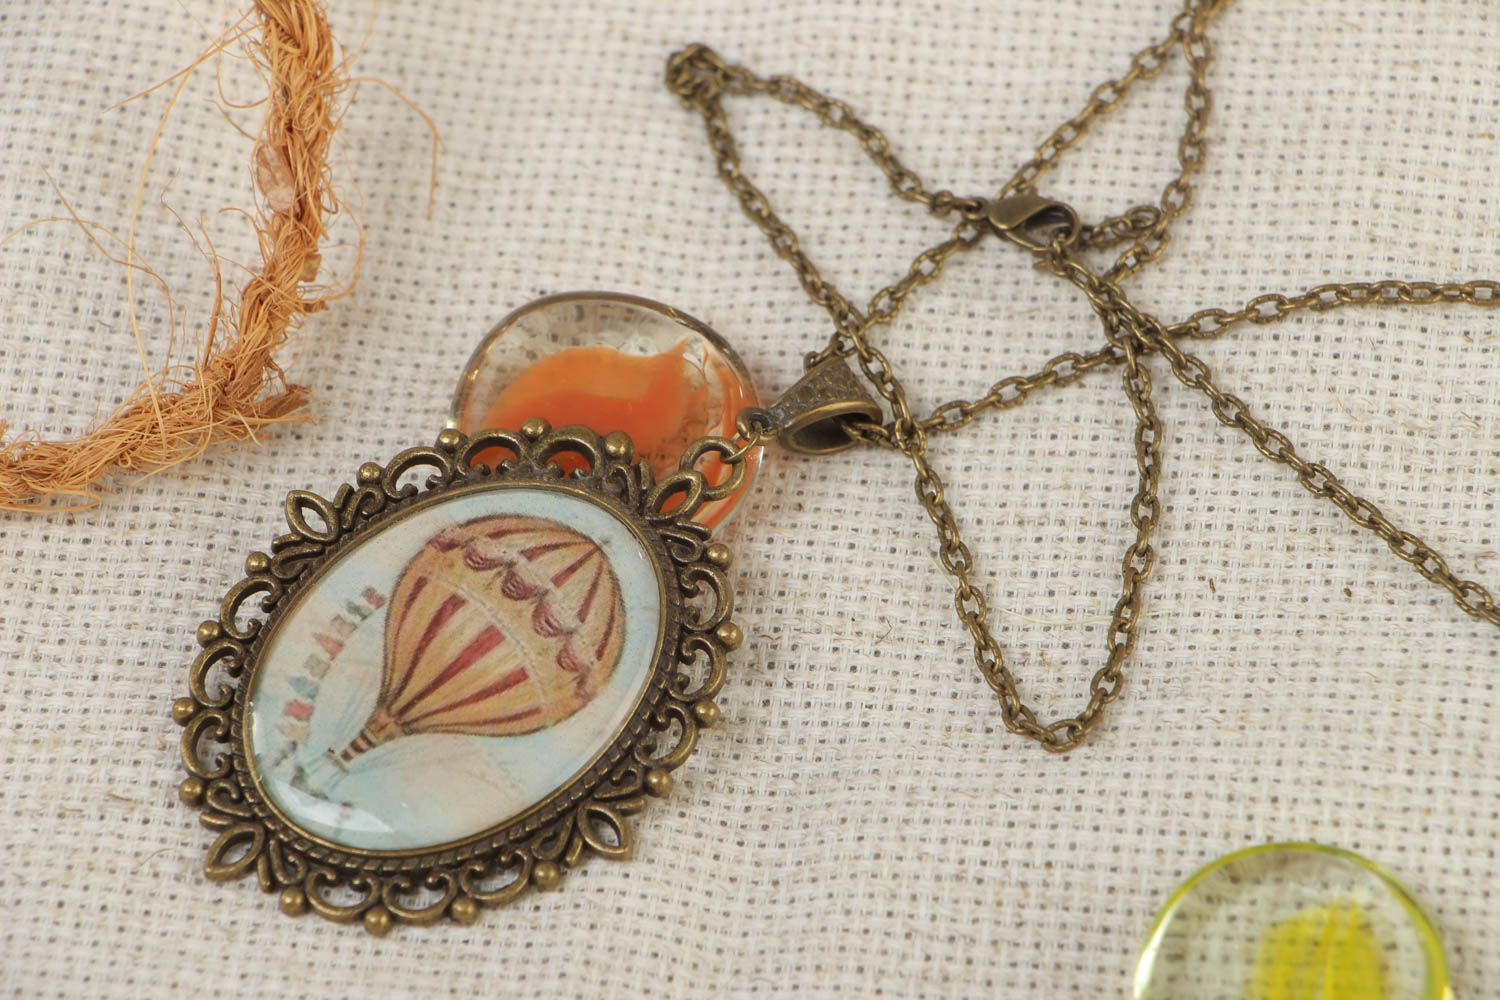 Handmade oval metal pendant with hot air balloon image on long chain 840 mm photo 1